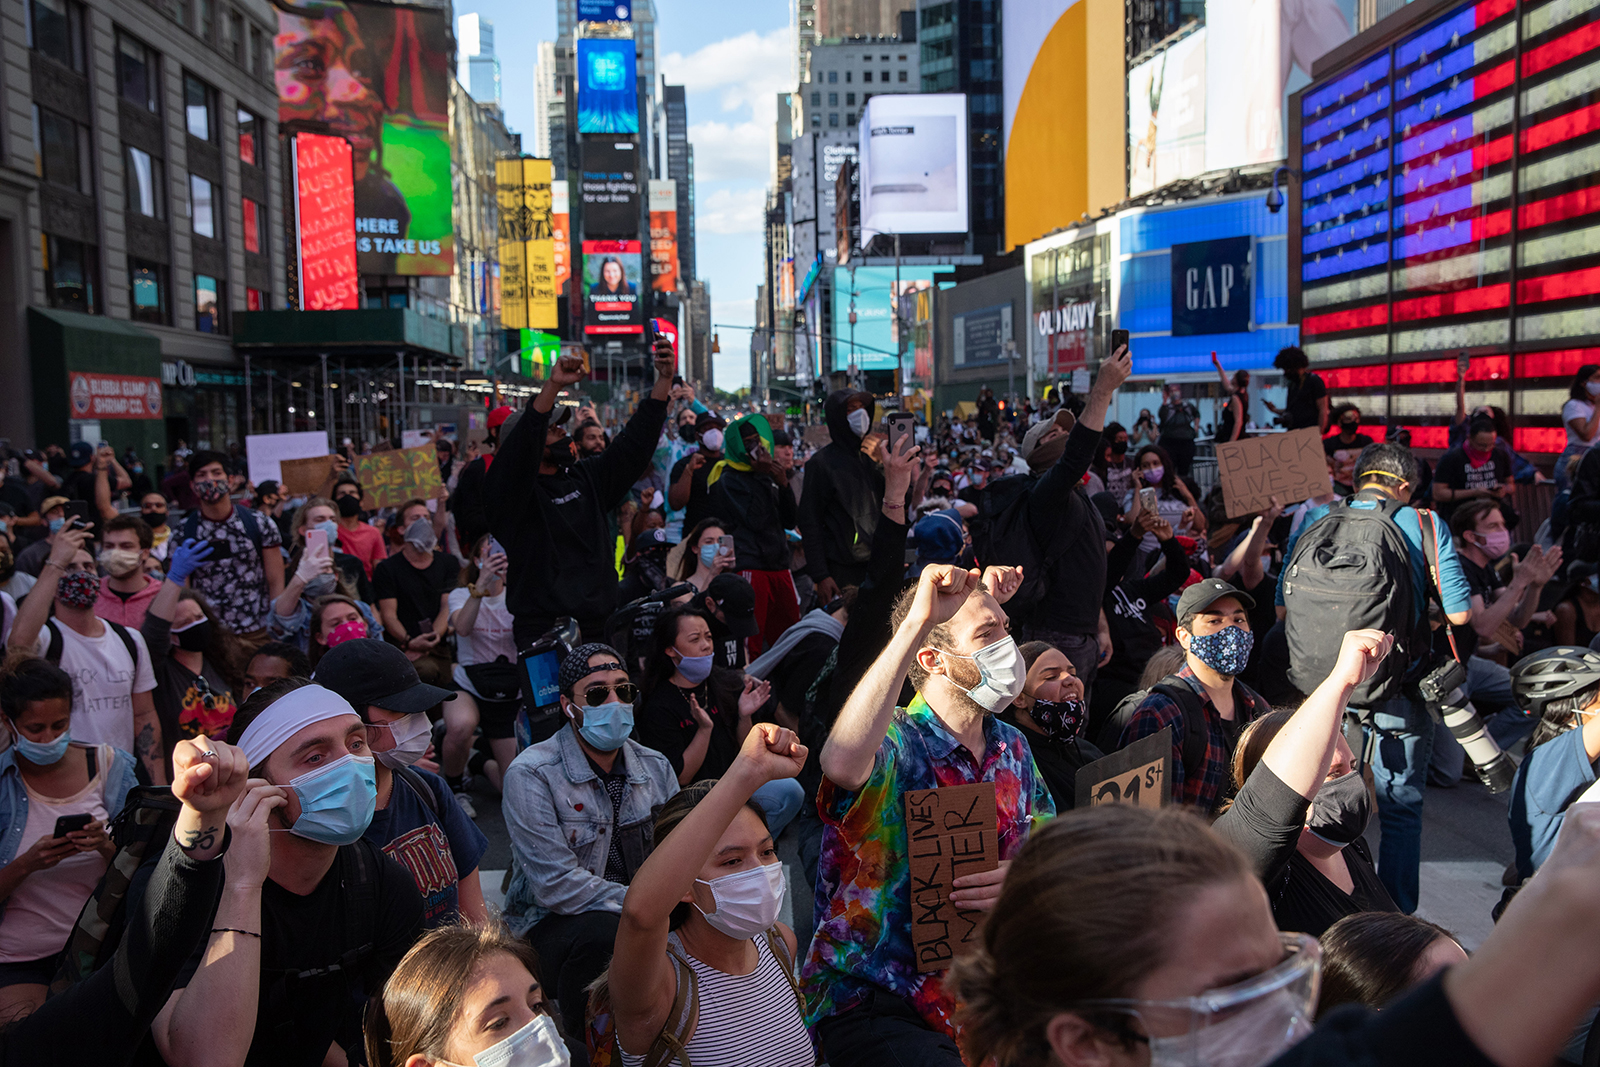 Black Lives Matter protesters kneel in Times Square while marching to honor George Floyd in New York, on May 31.